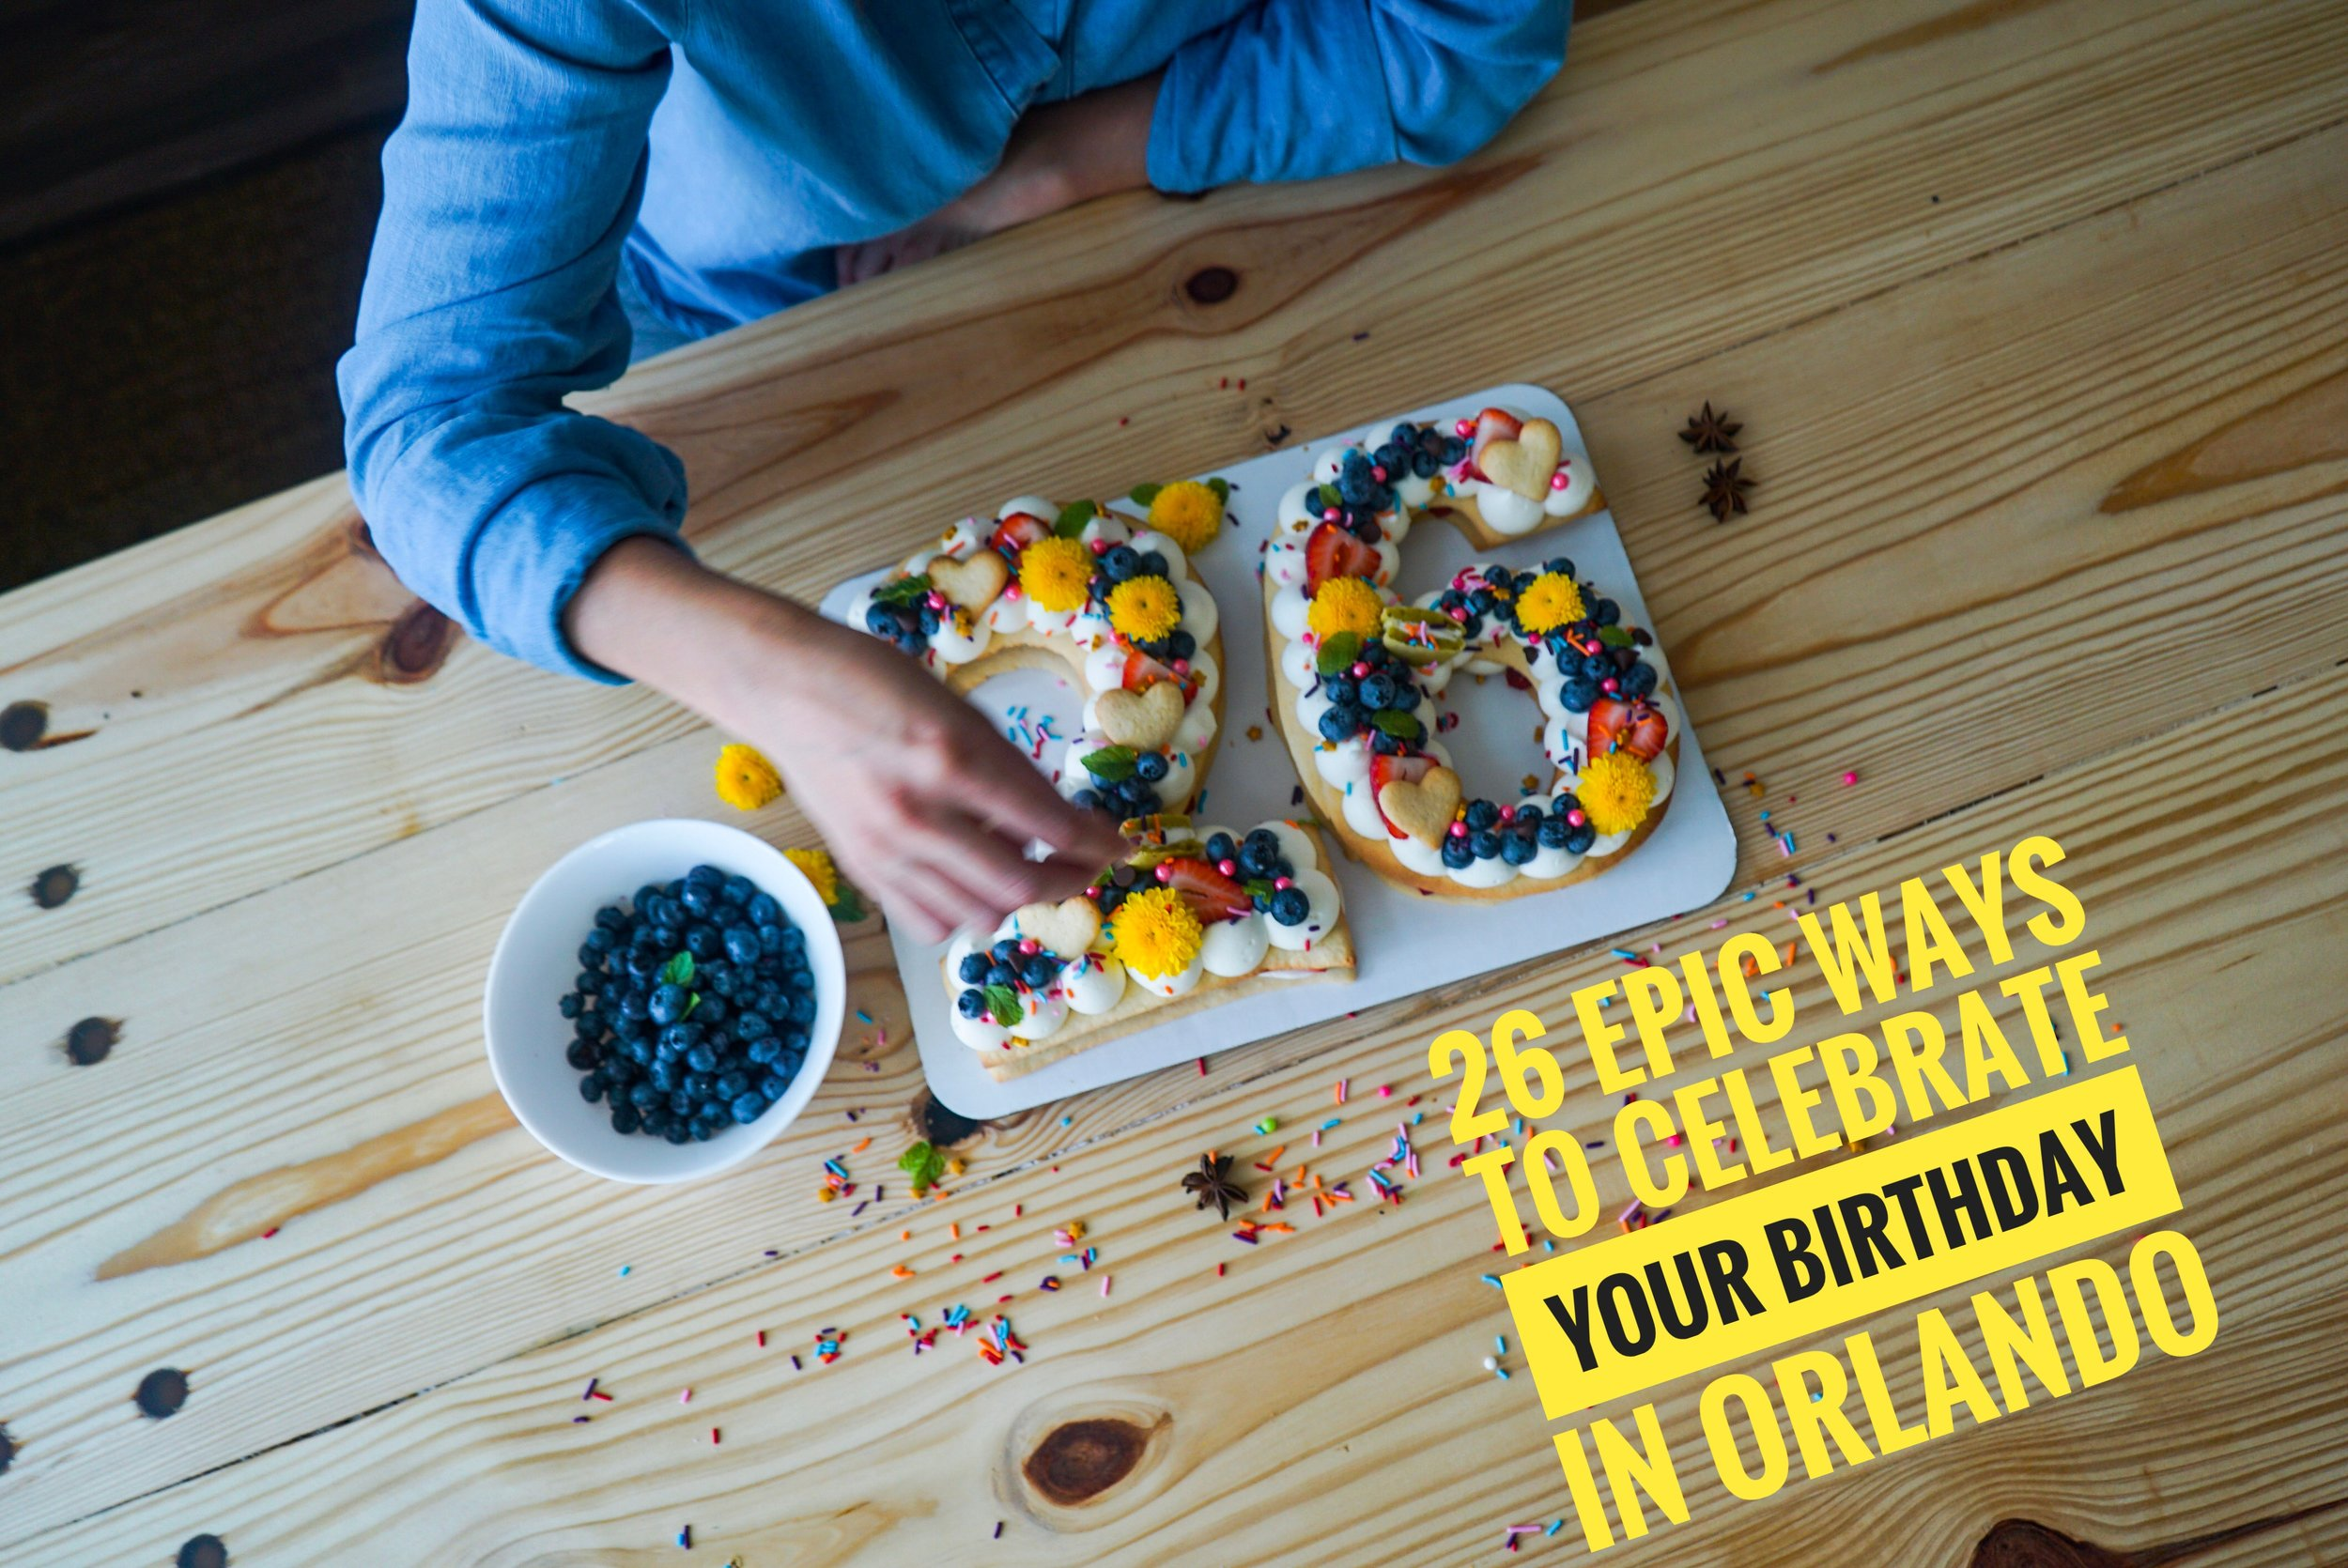 26 Epic Ways To Celebrate Your Birthday In Orlando